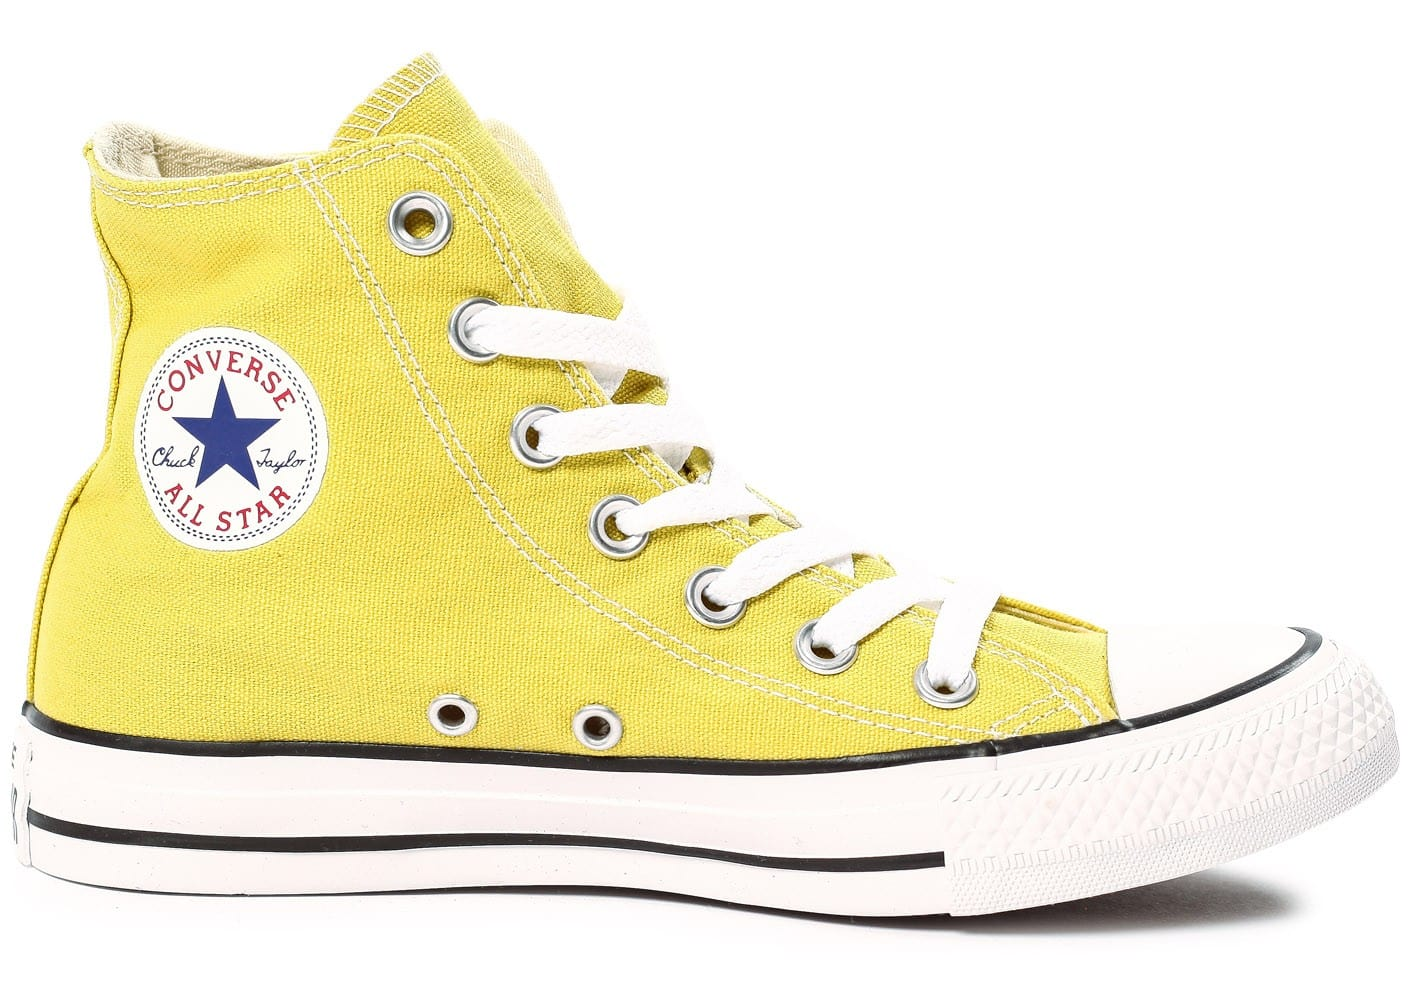 Pâle Taylor All Star Chaussures Converse Jaune Montante Chuck W2YEI9DH